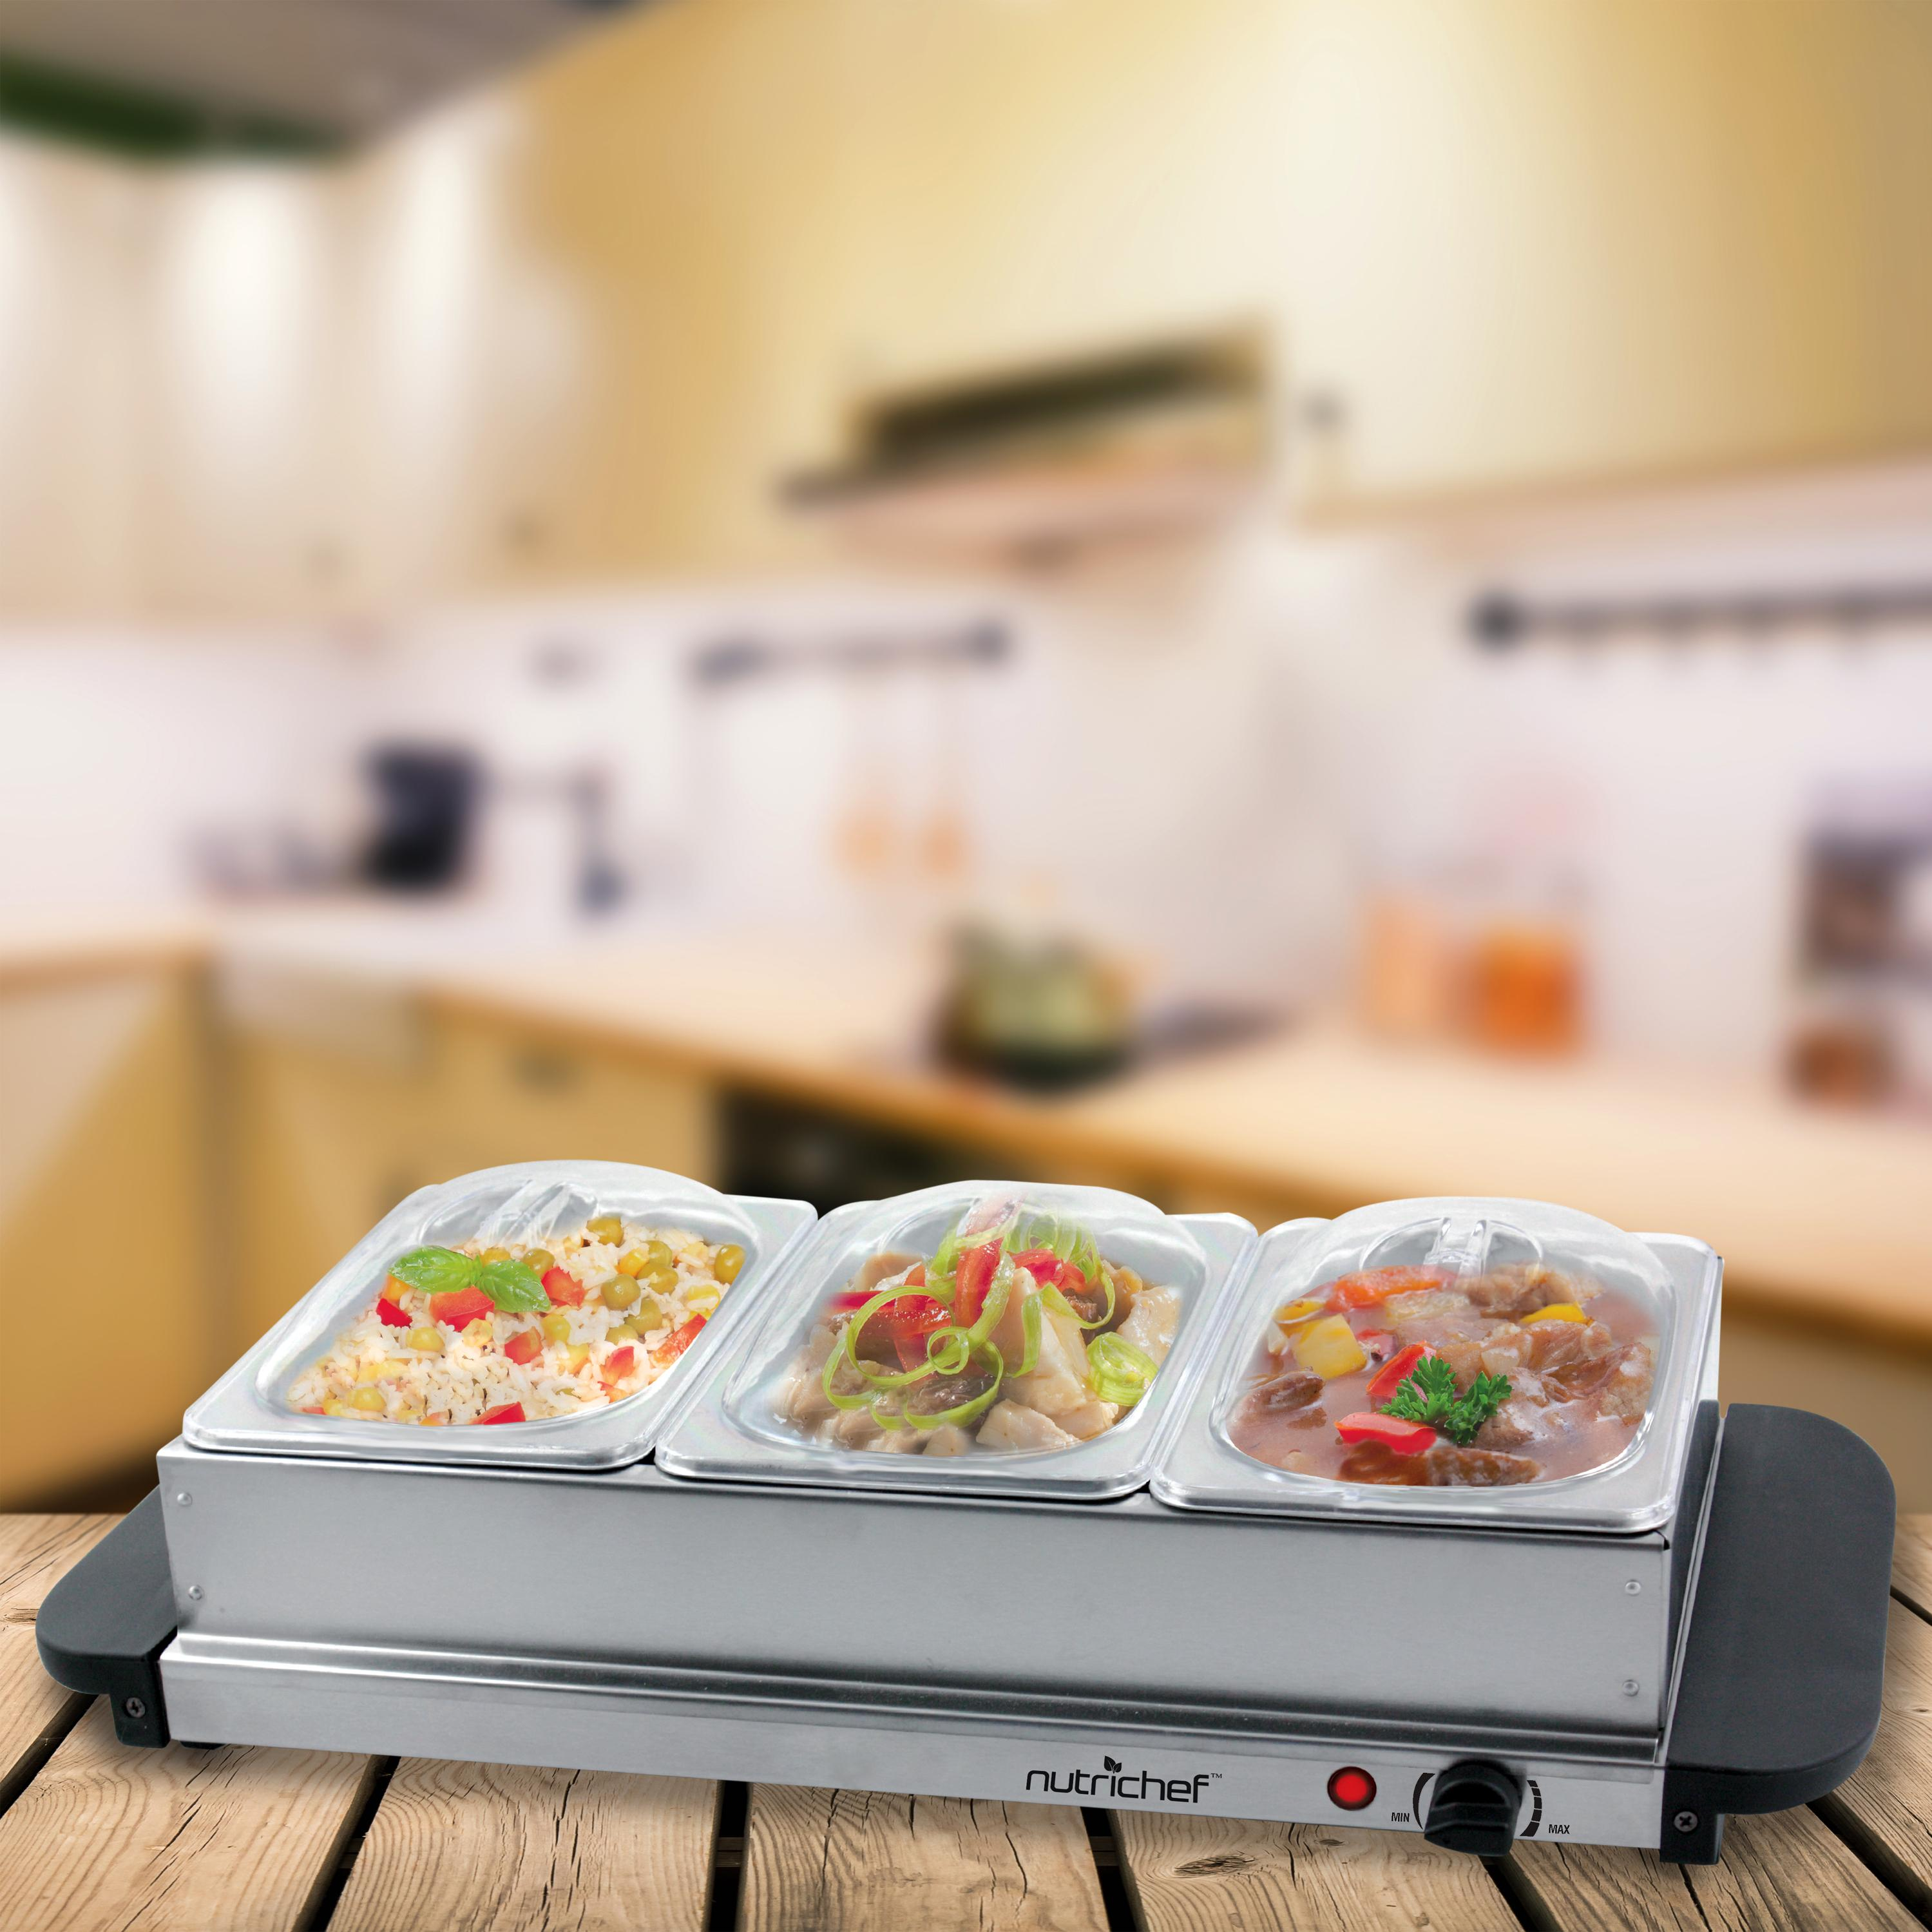 Amazon.com: NutriChef 3 Tray Buffet Server & Hot Plate